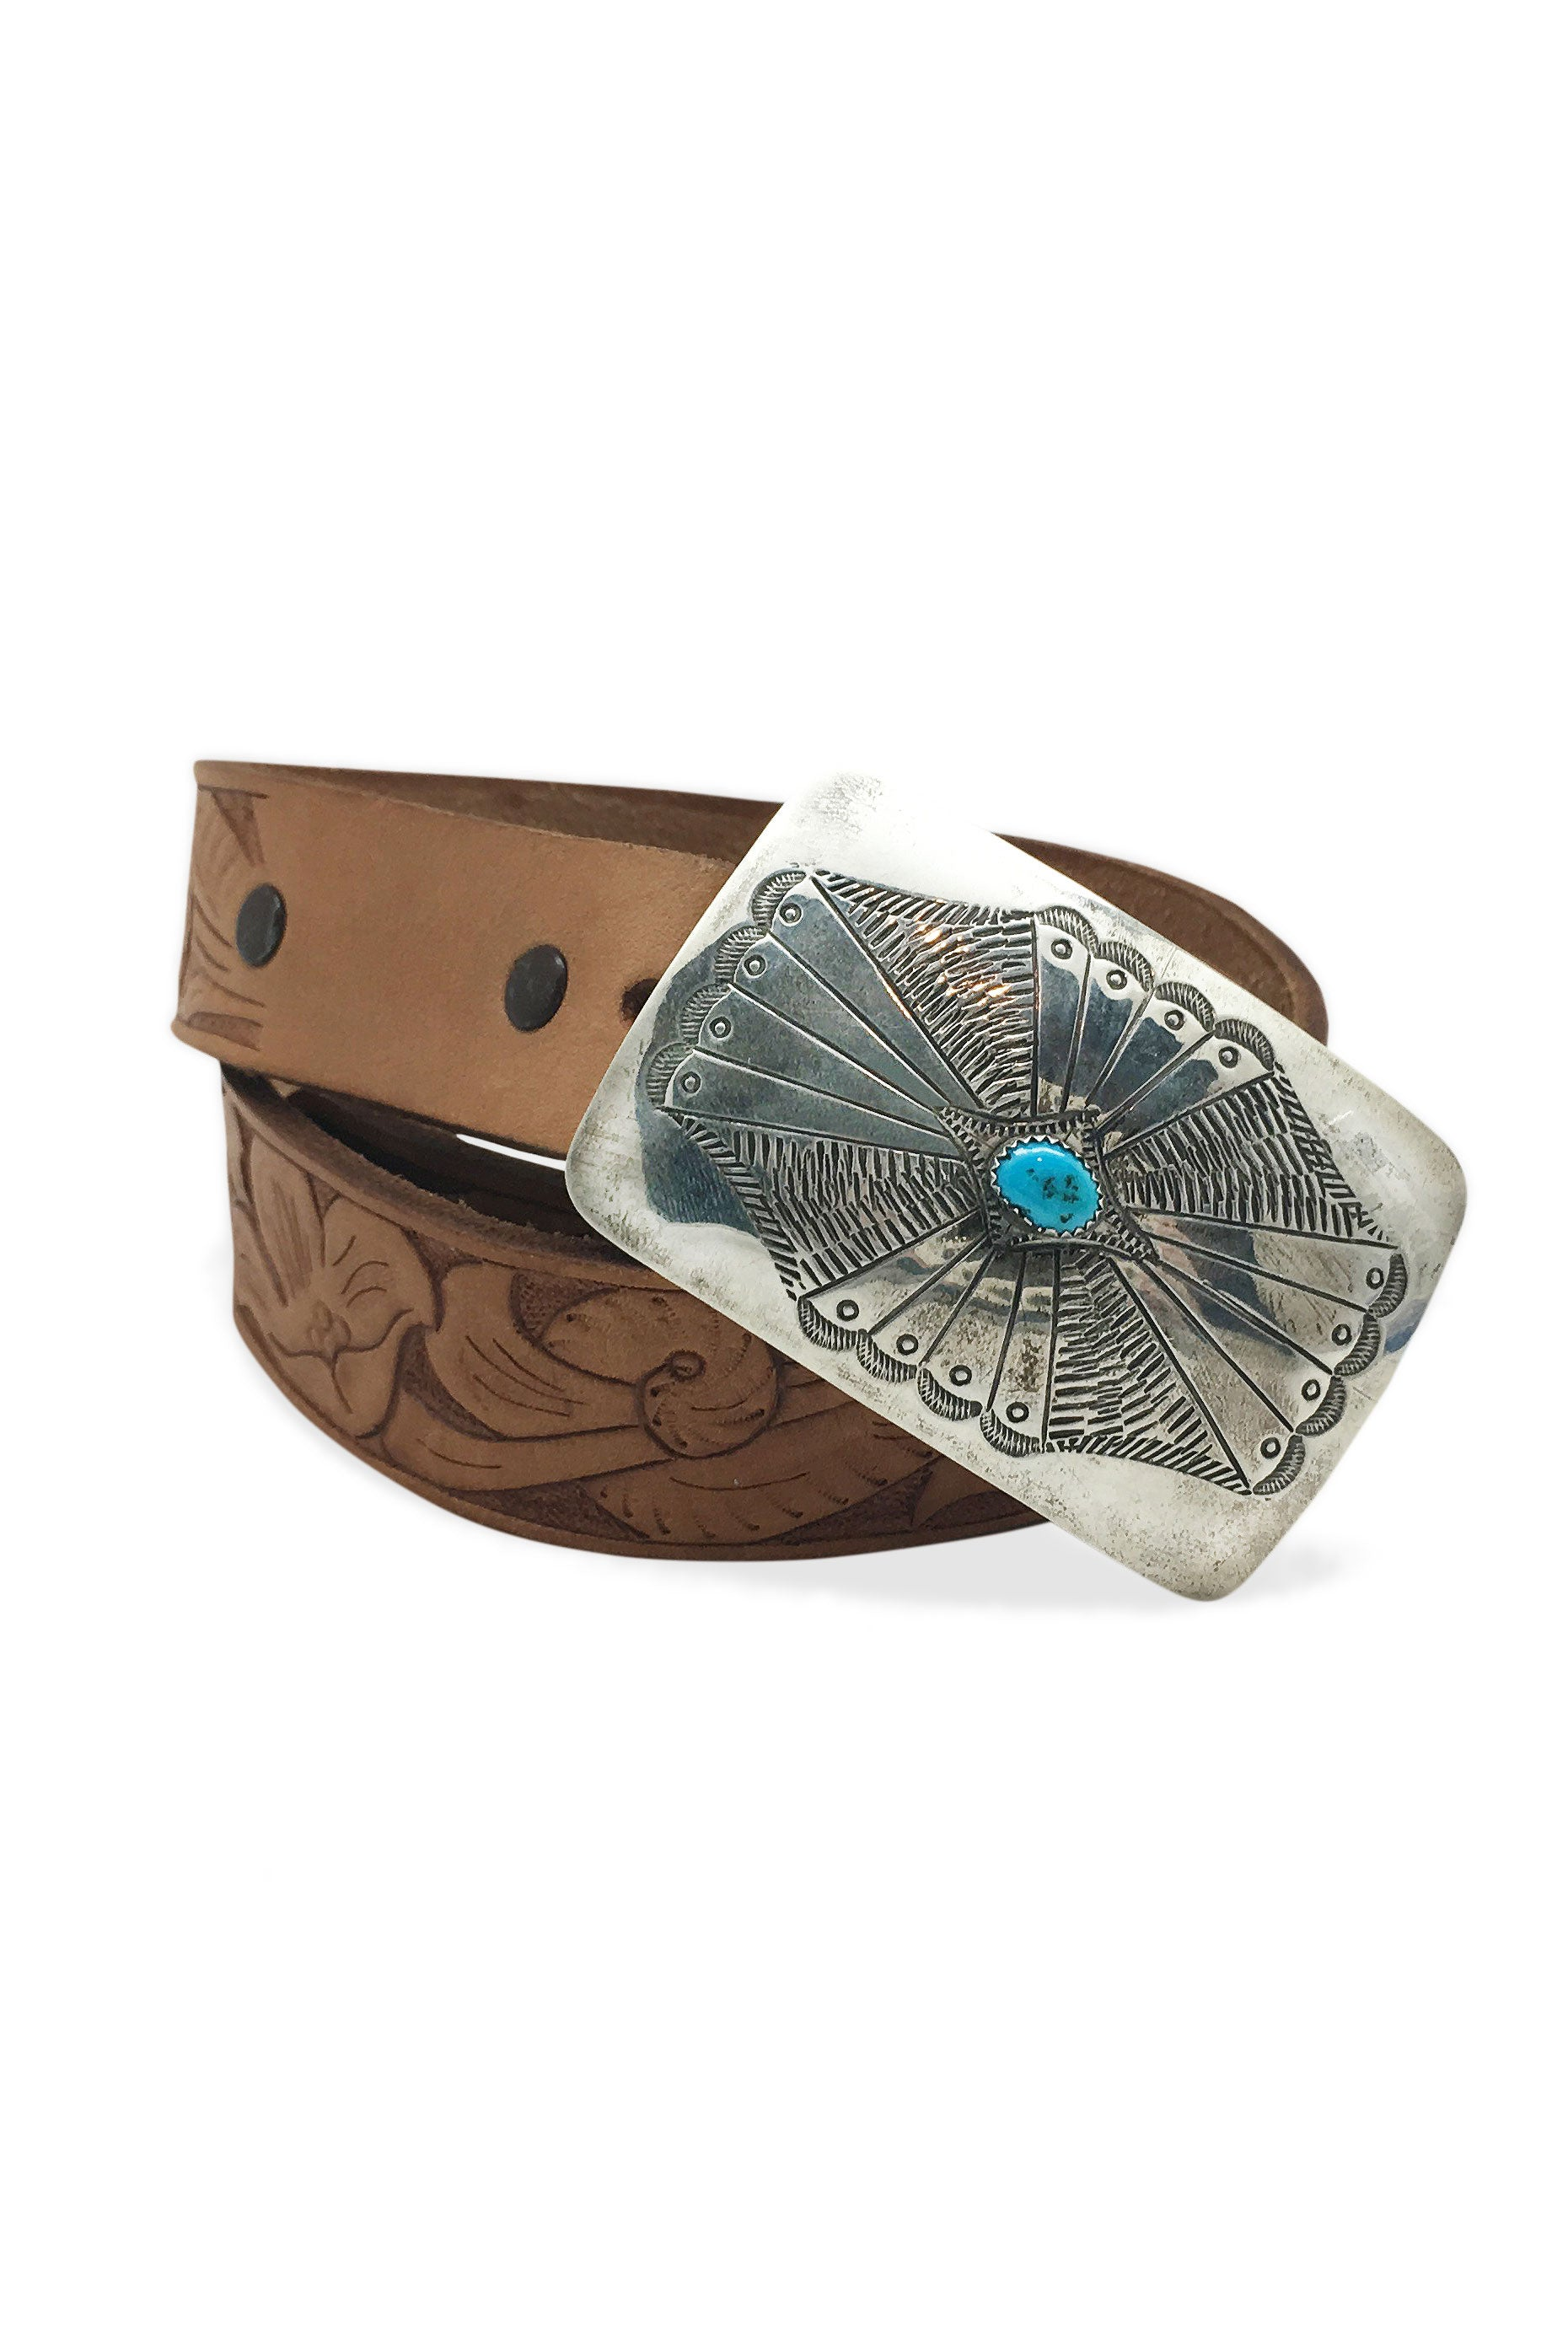 Belt Concho Buckle Turquoise Tooled Leather Strap Vintage 669